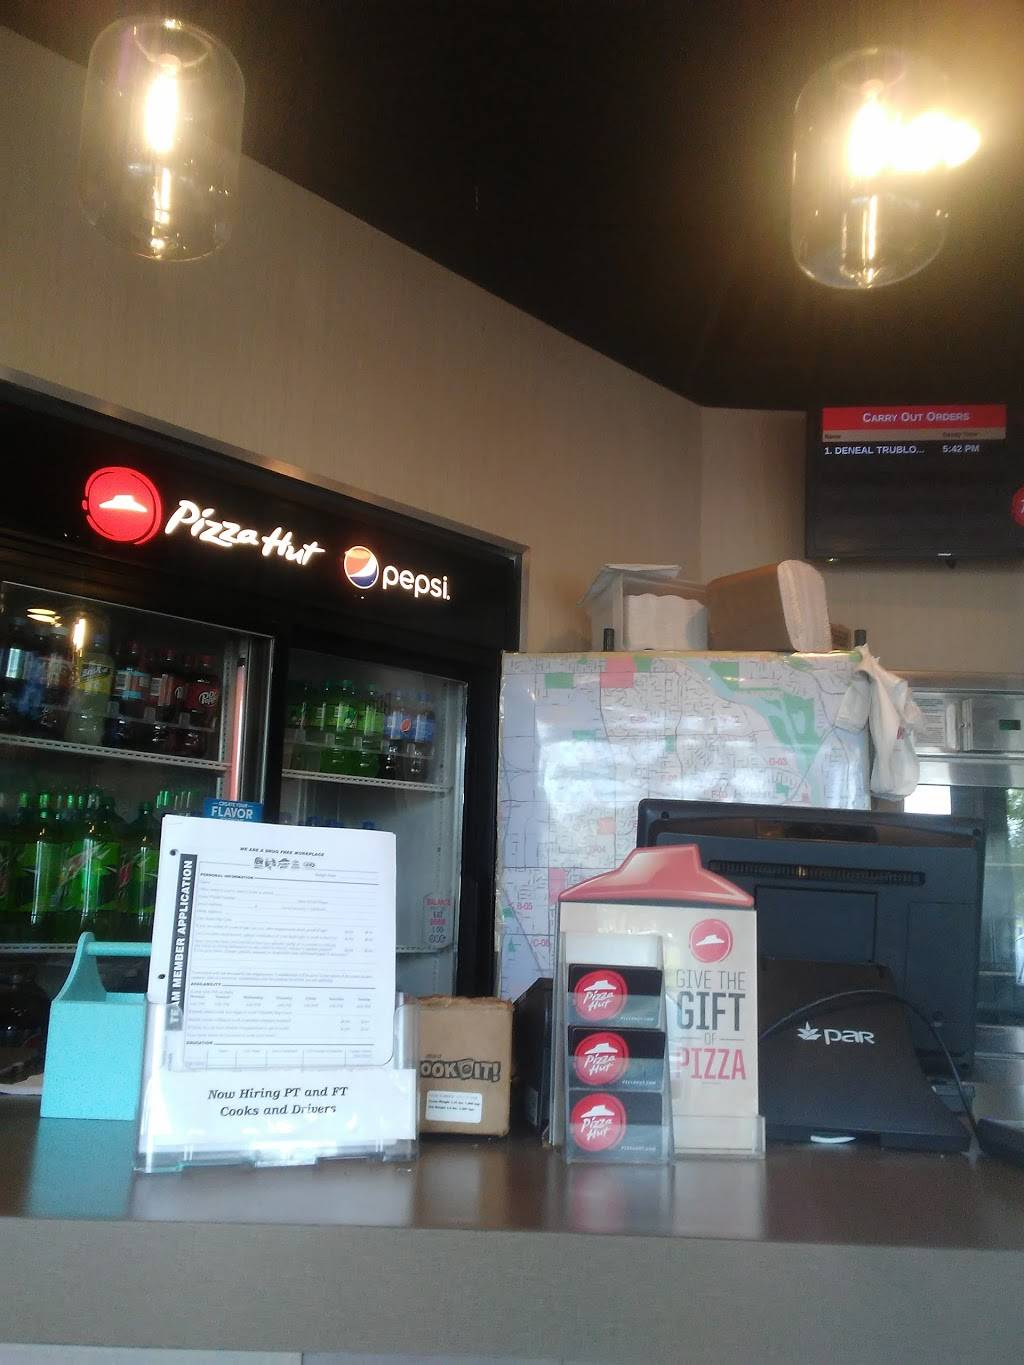 Pizza Hut - meal takeaway  | Photo 6 of 7 | Address: 2985 Brookdale Dr, Brooklyn Park, MN 55444, USA | Phone: (763) 566-5000